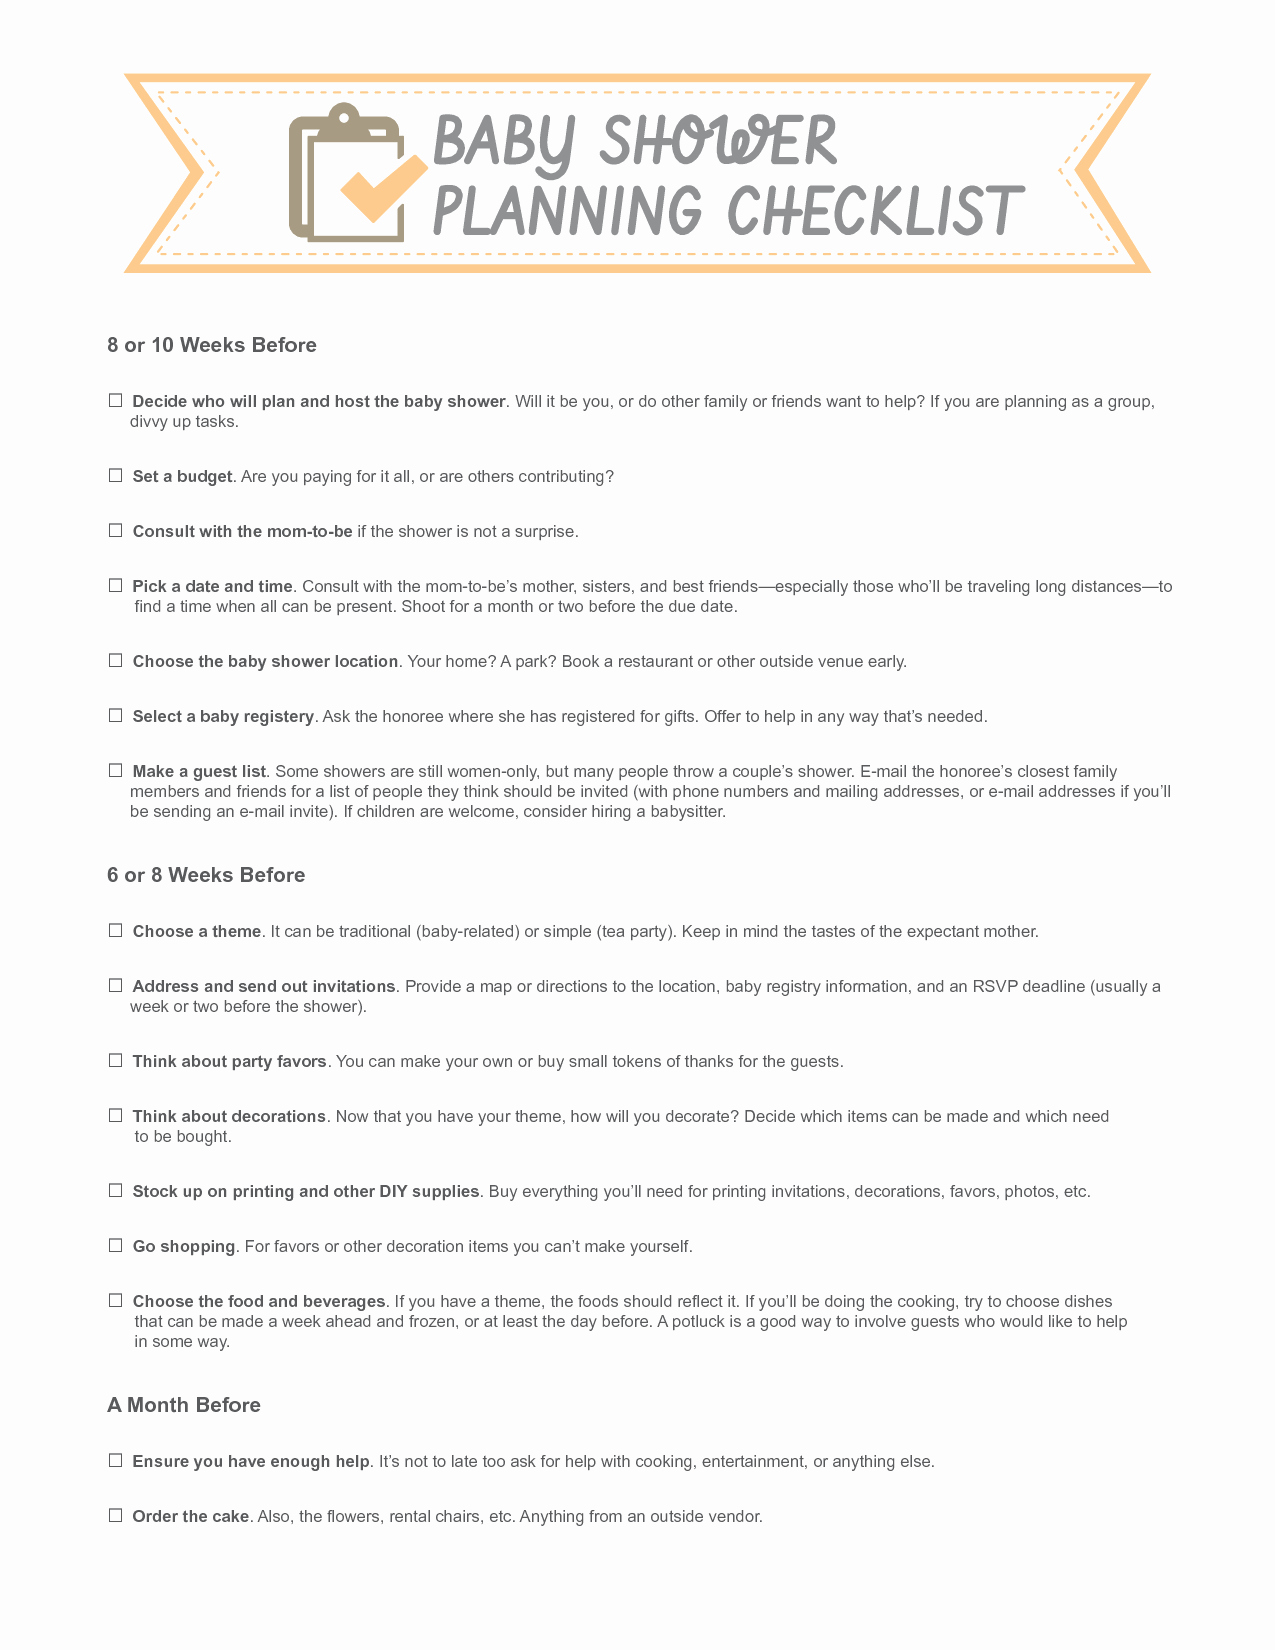 Baby Shower Planning Check List Inspirational Template for Bowtie for A Baby Shower